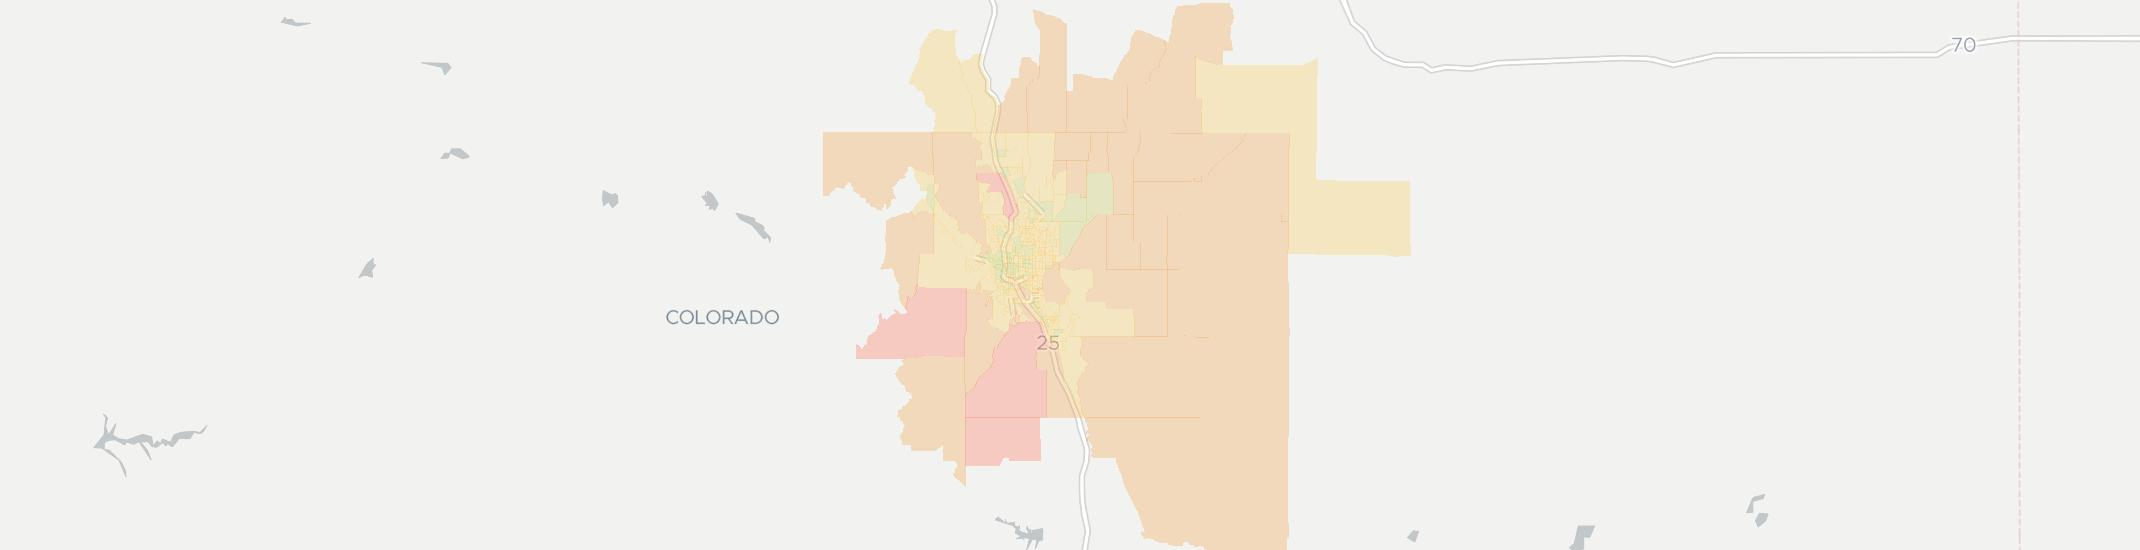 80906 Zip Code Map.Internet Providers In Colorado Springs Compare 29 Internet Providers